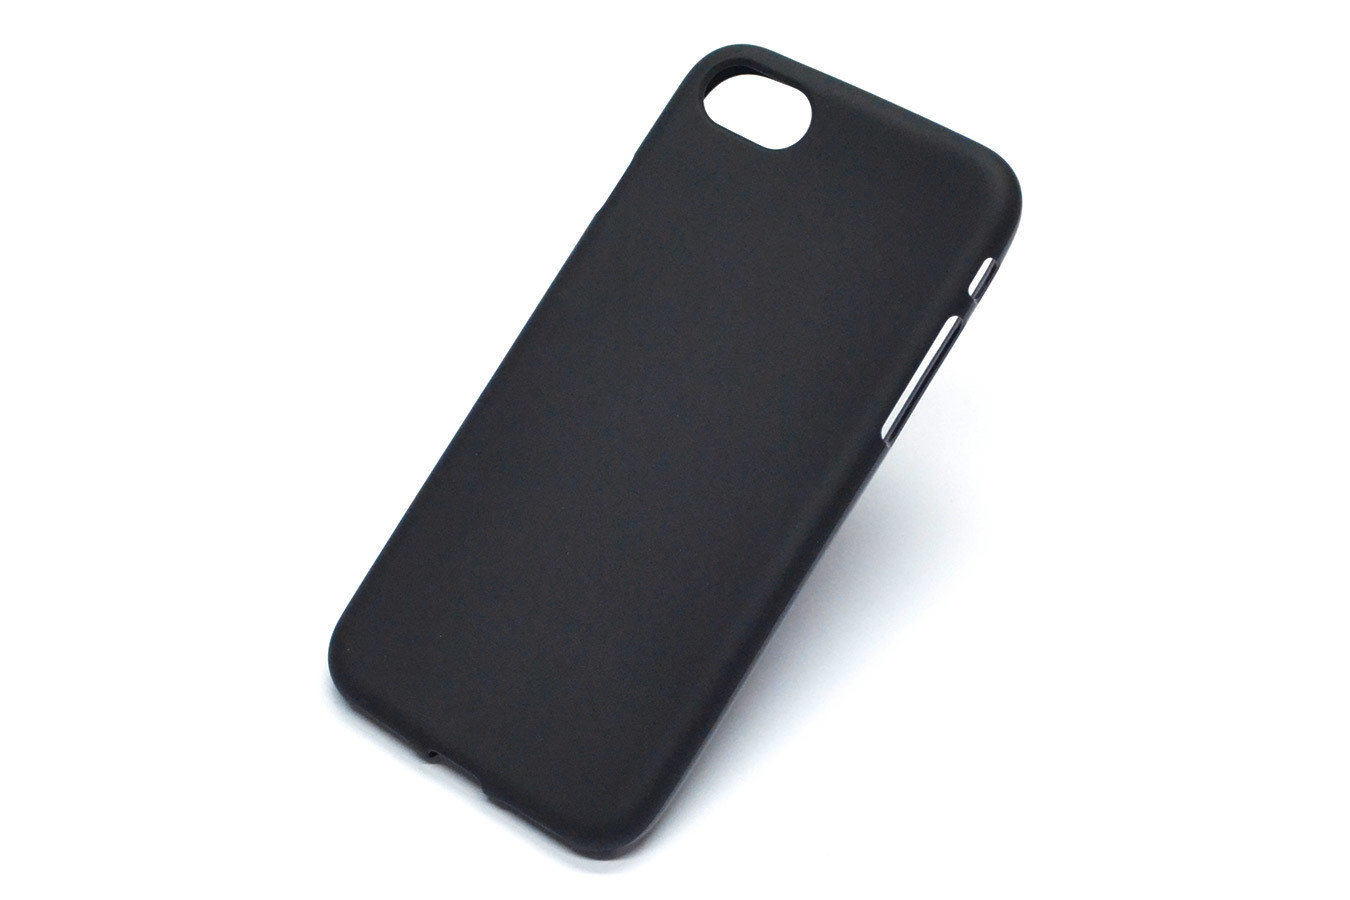 iPhone 7 Plastic Black